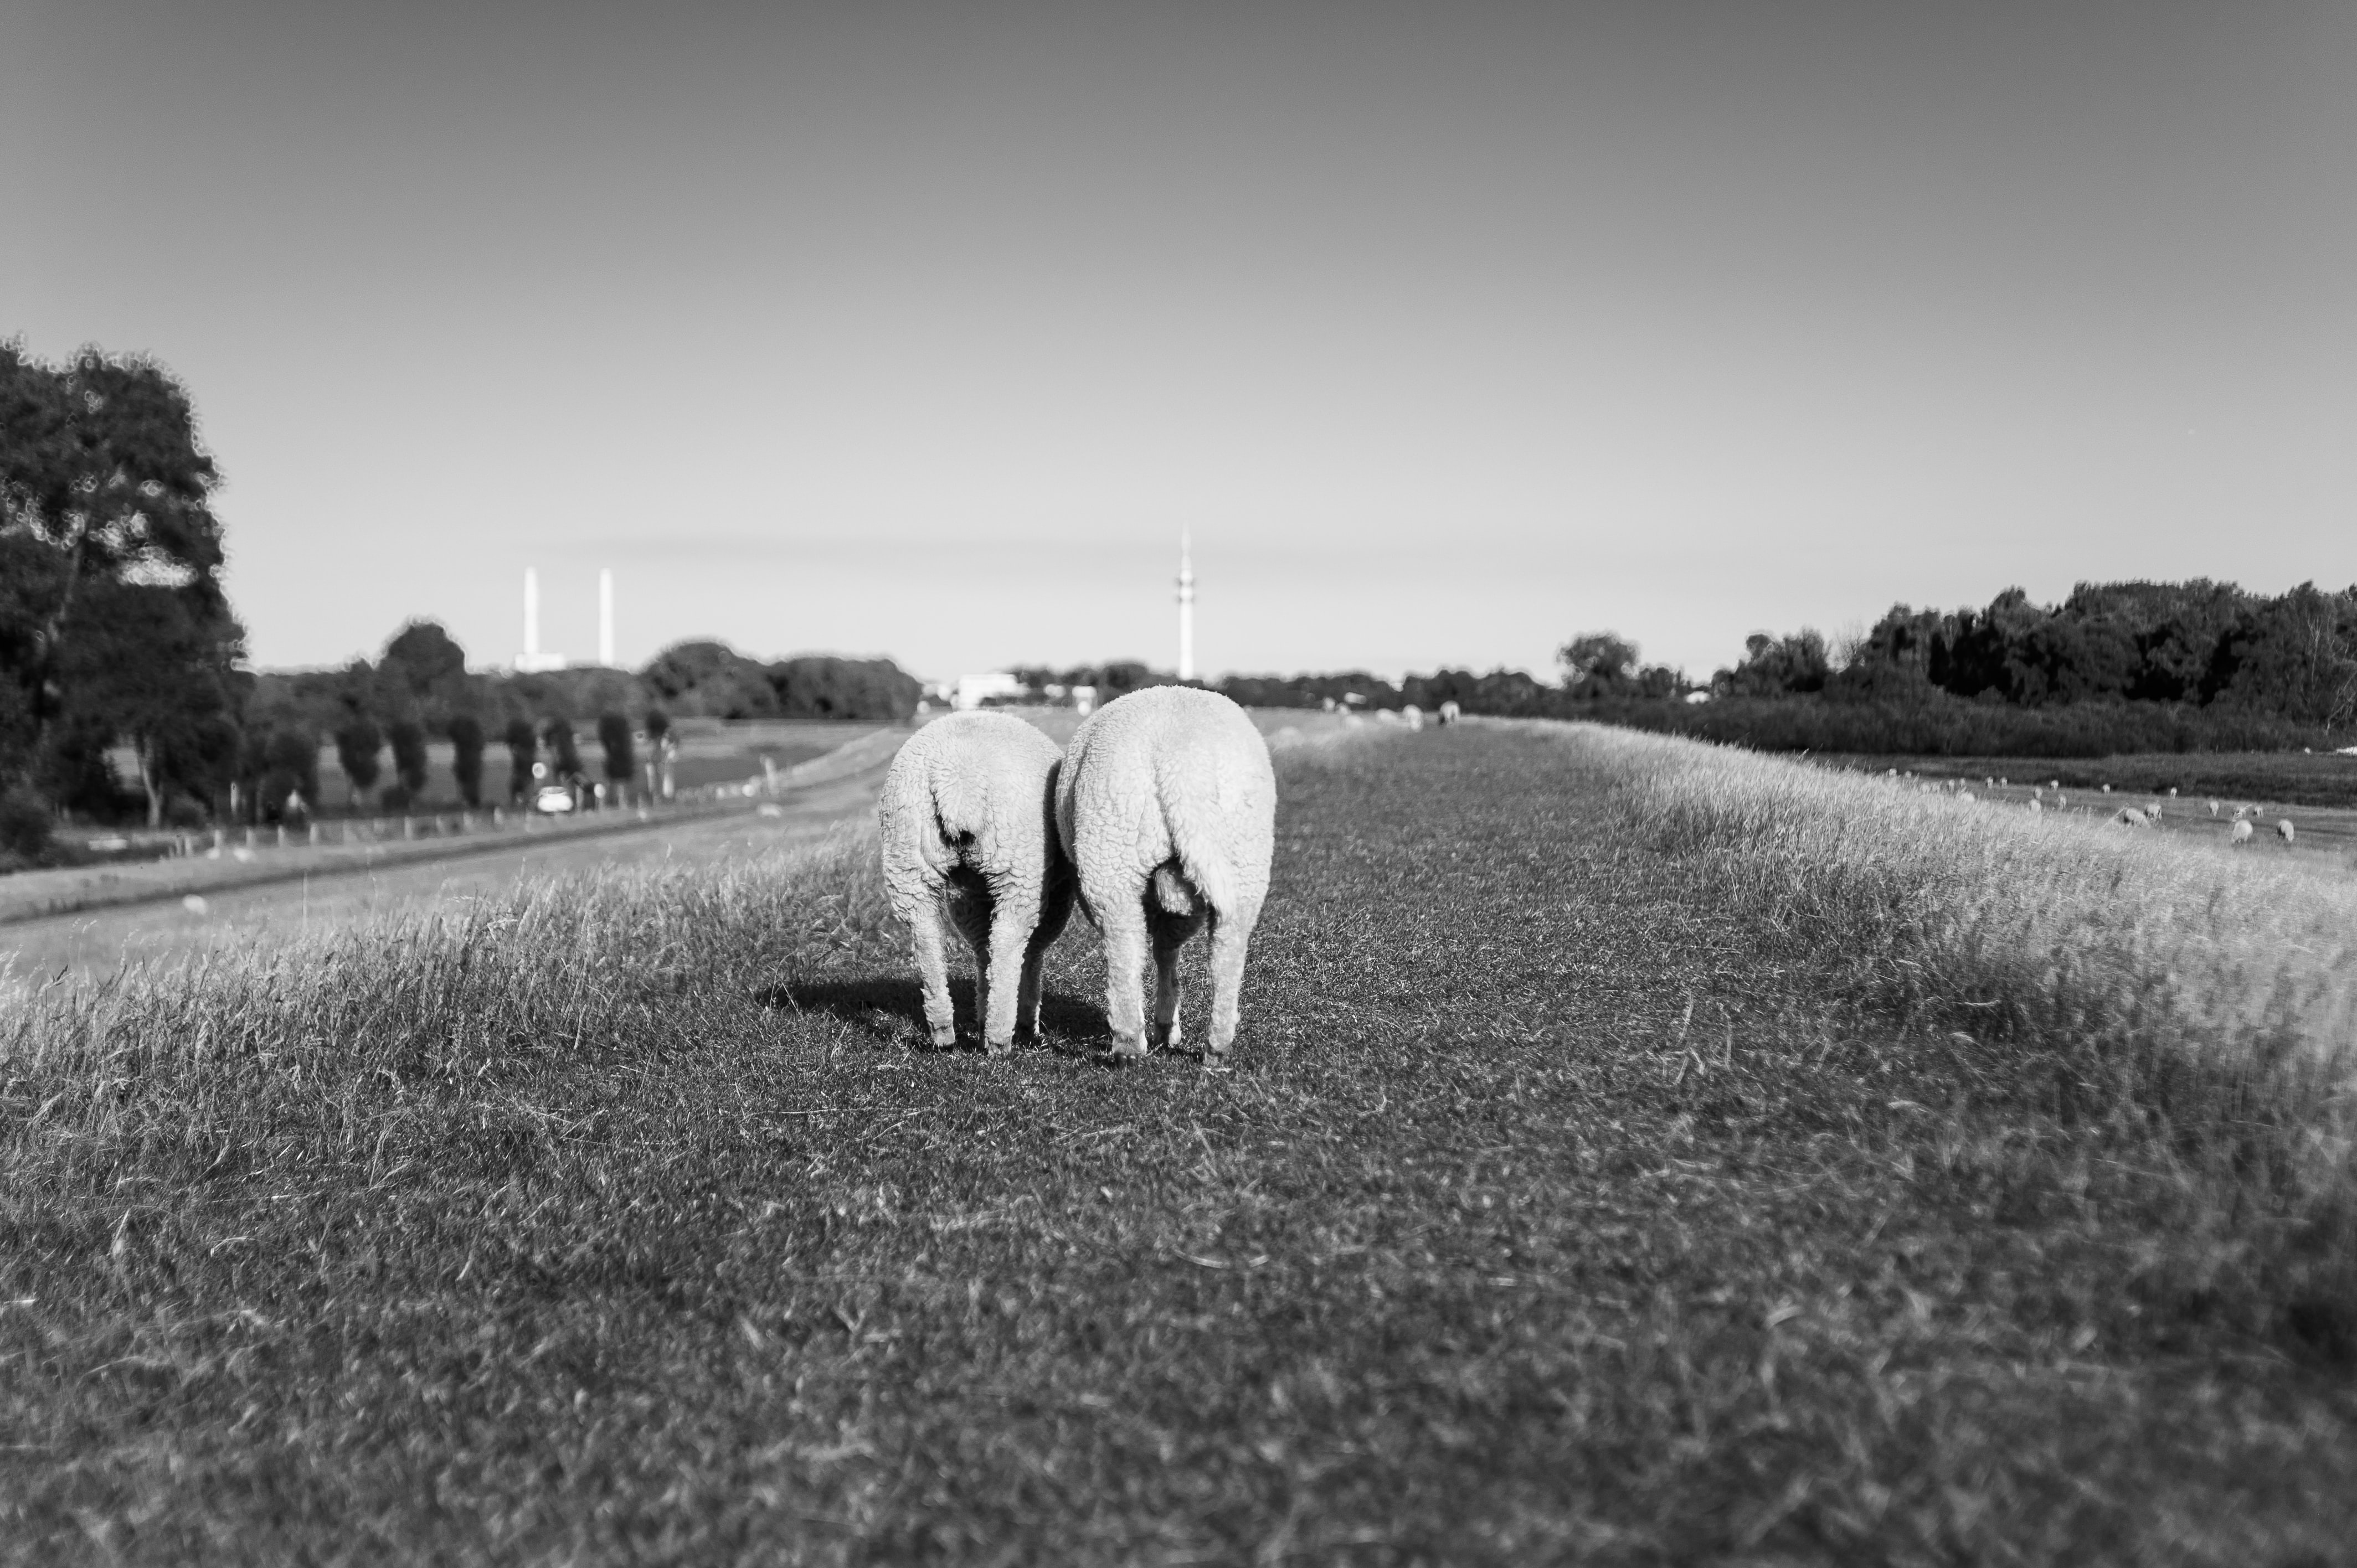 grayscale photo of two animal walking on grass